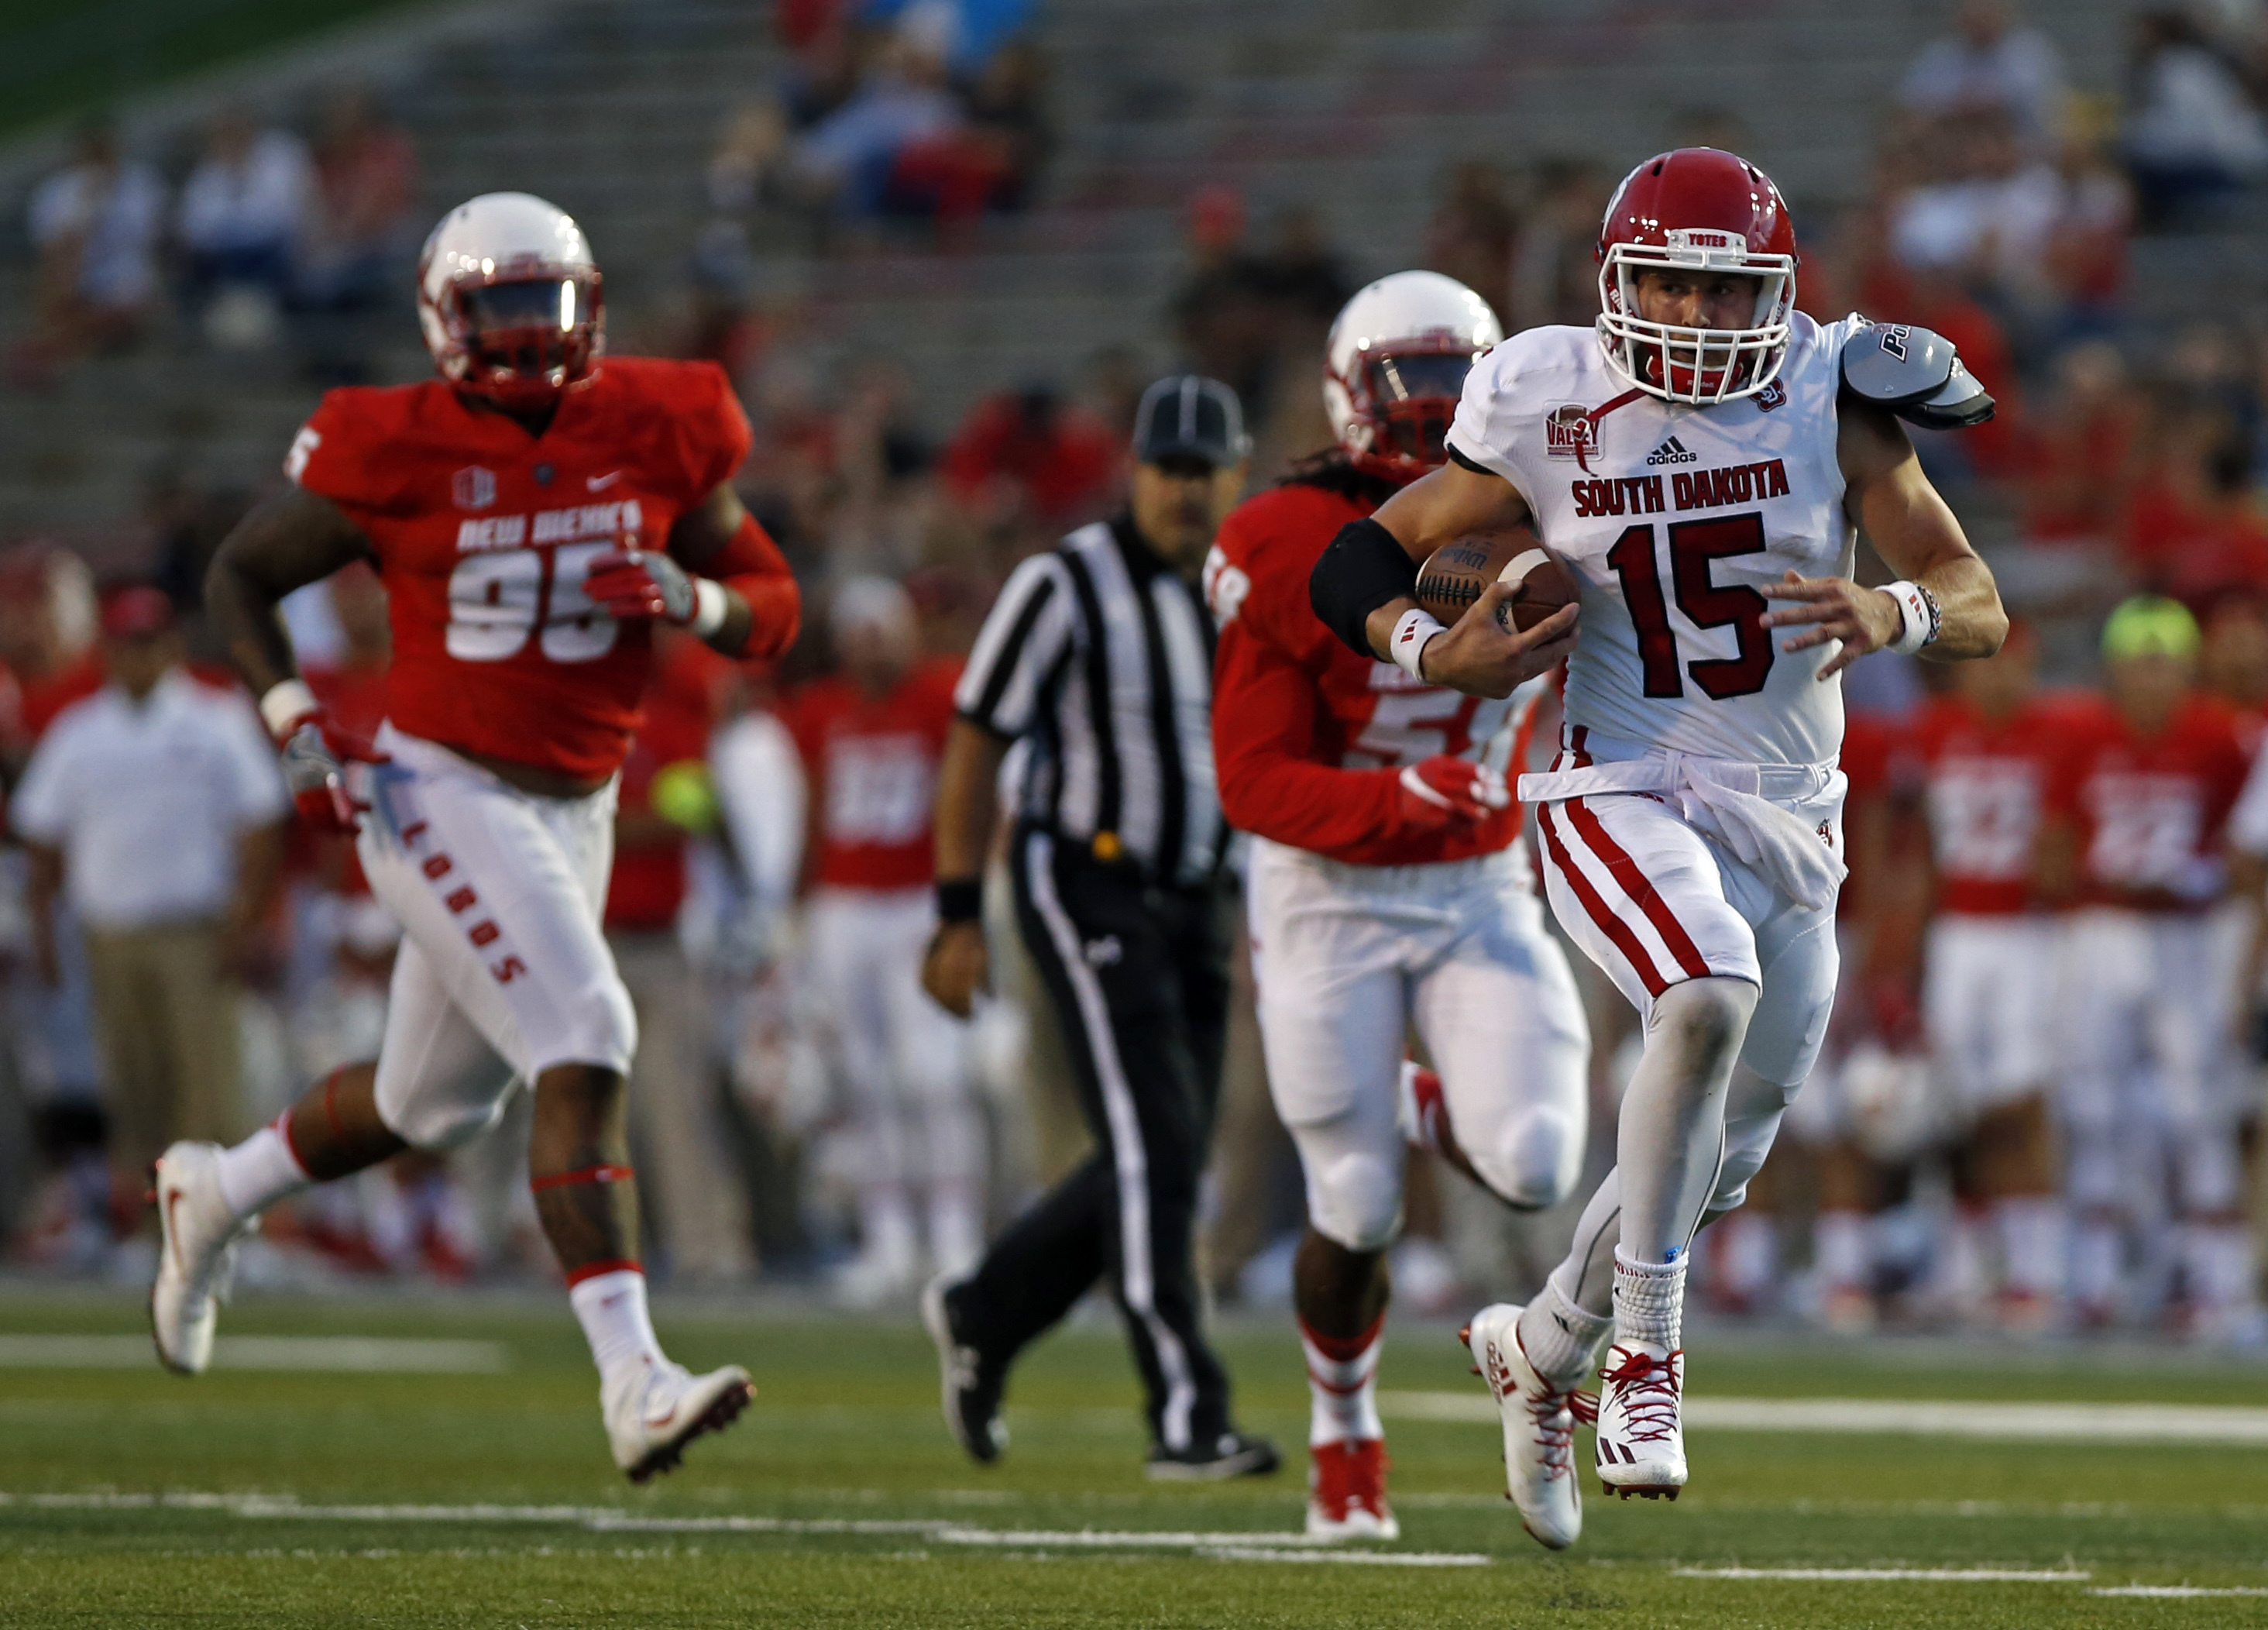 South Dakota quarterback Chris Streveler (15) sprints to the end zone for a touchdown ahead of New Mexico defensive lineman Garrett Hughes (95) and linebacker Maurice Daniels (58) during the first half of an NCAA college football game in Albuquerque, N.M.